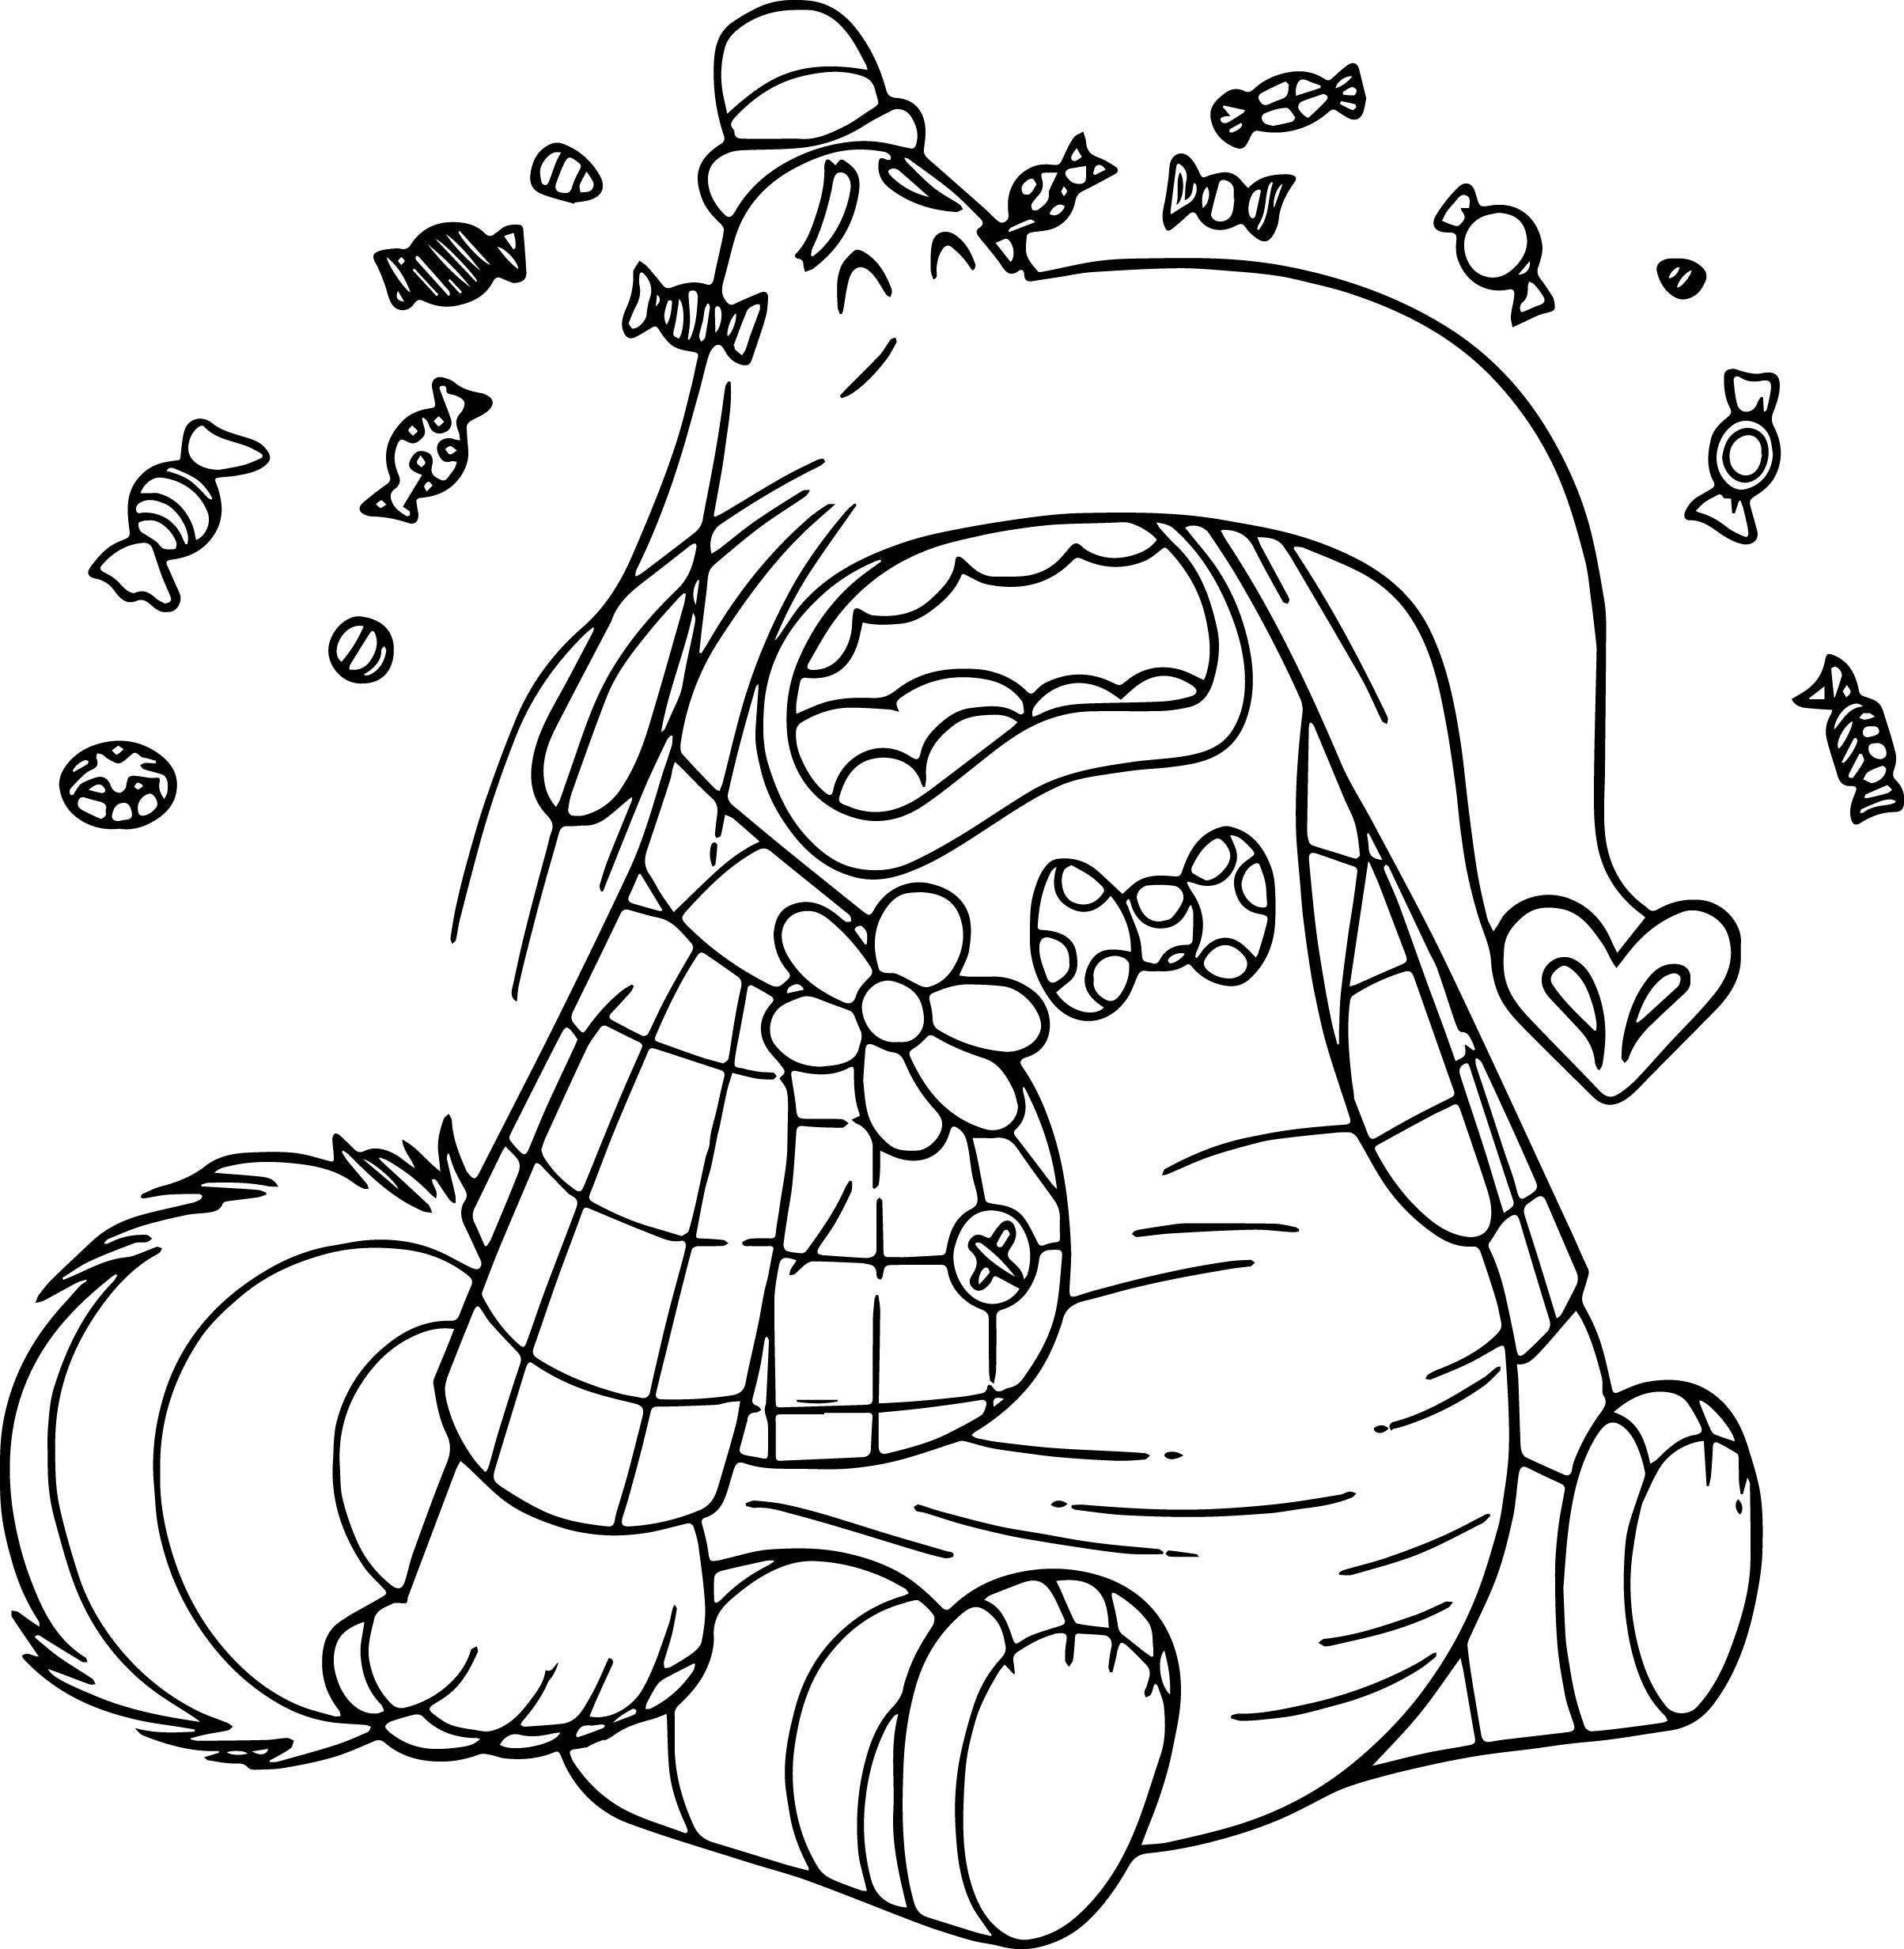 Bingbong Cry Coloring Pages   Wecoloringpage.com